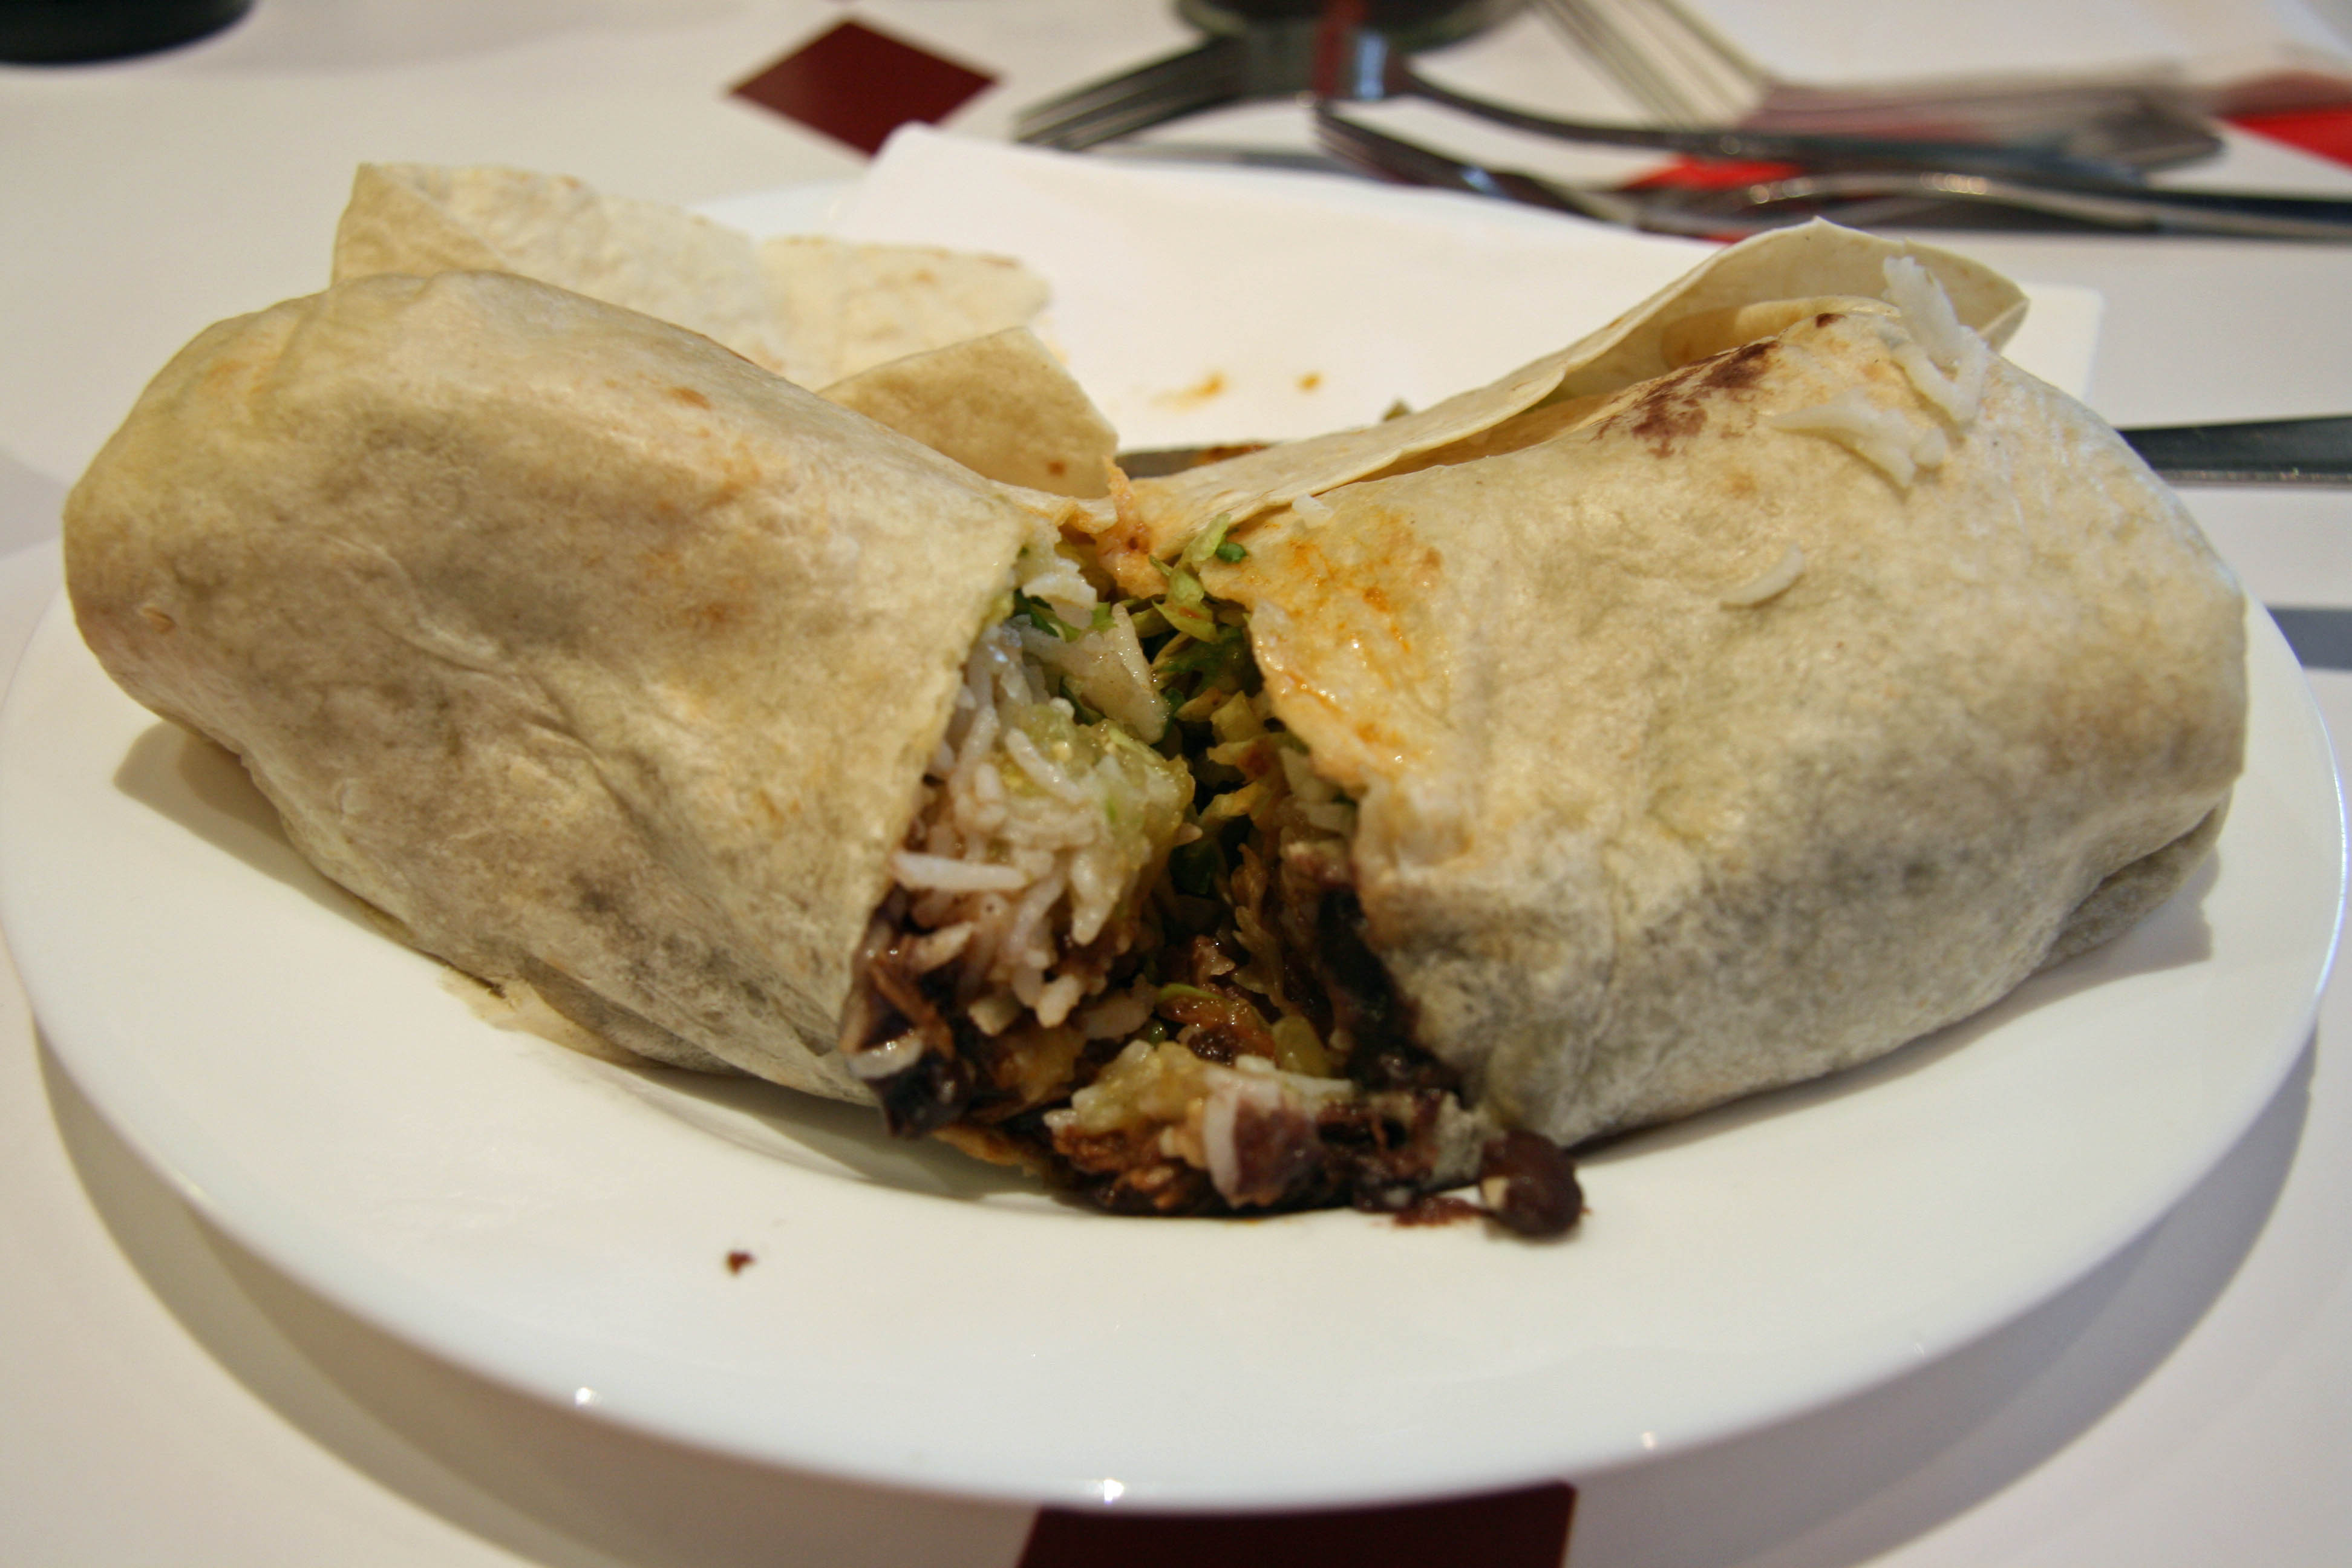 A Burrito at Dolores in Berlin Mitte